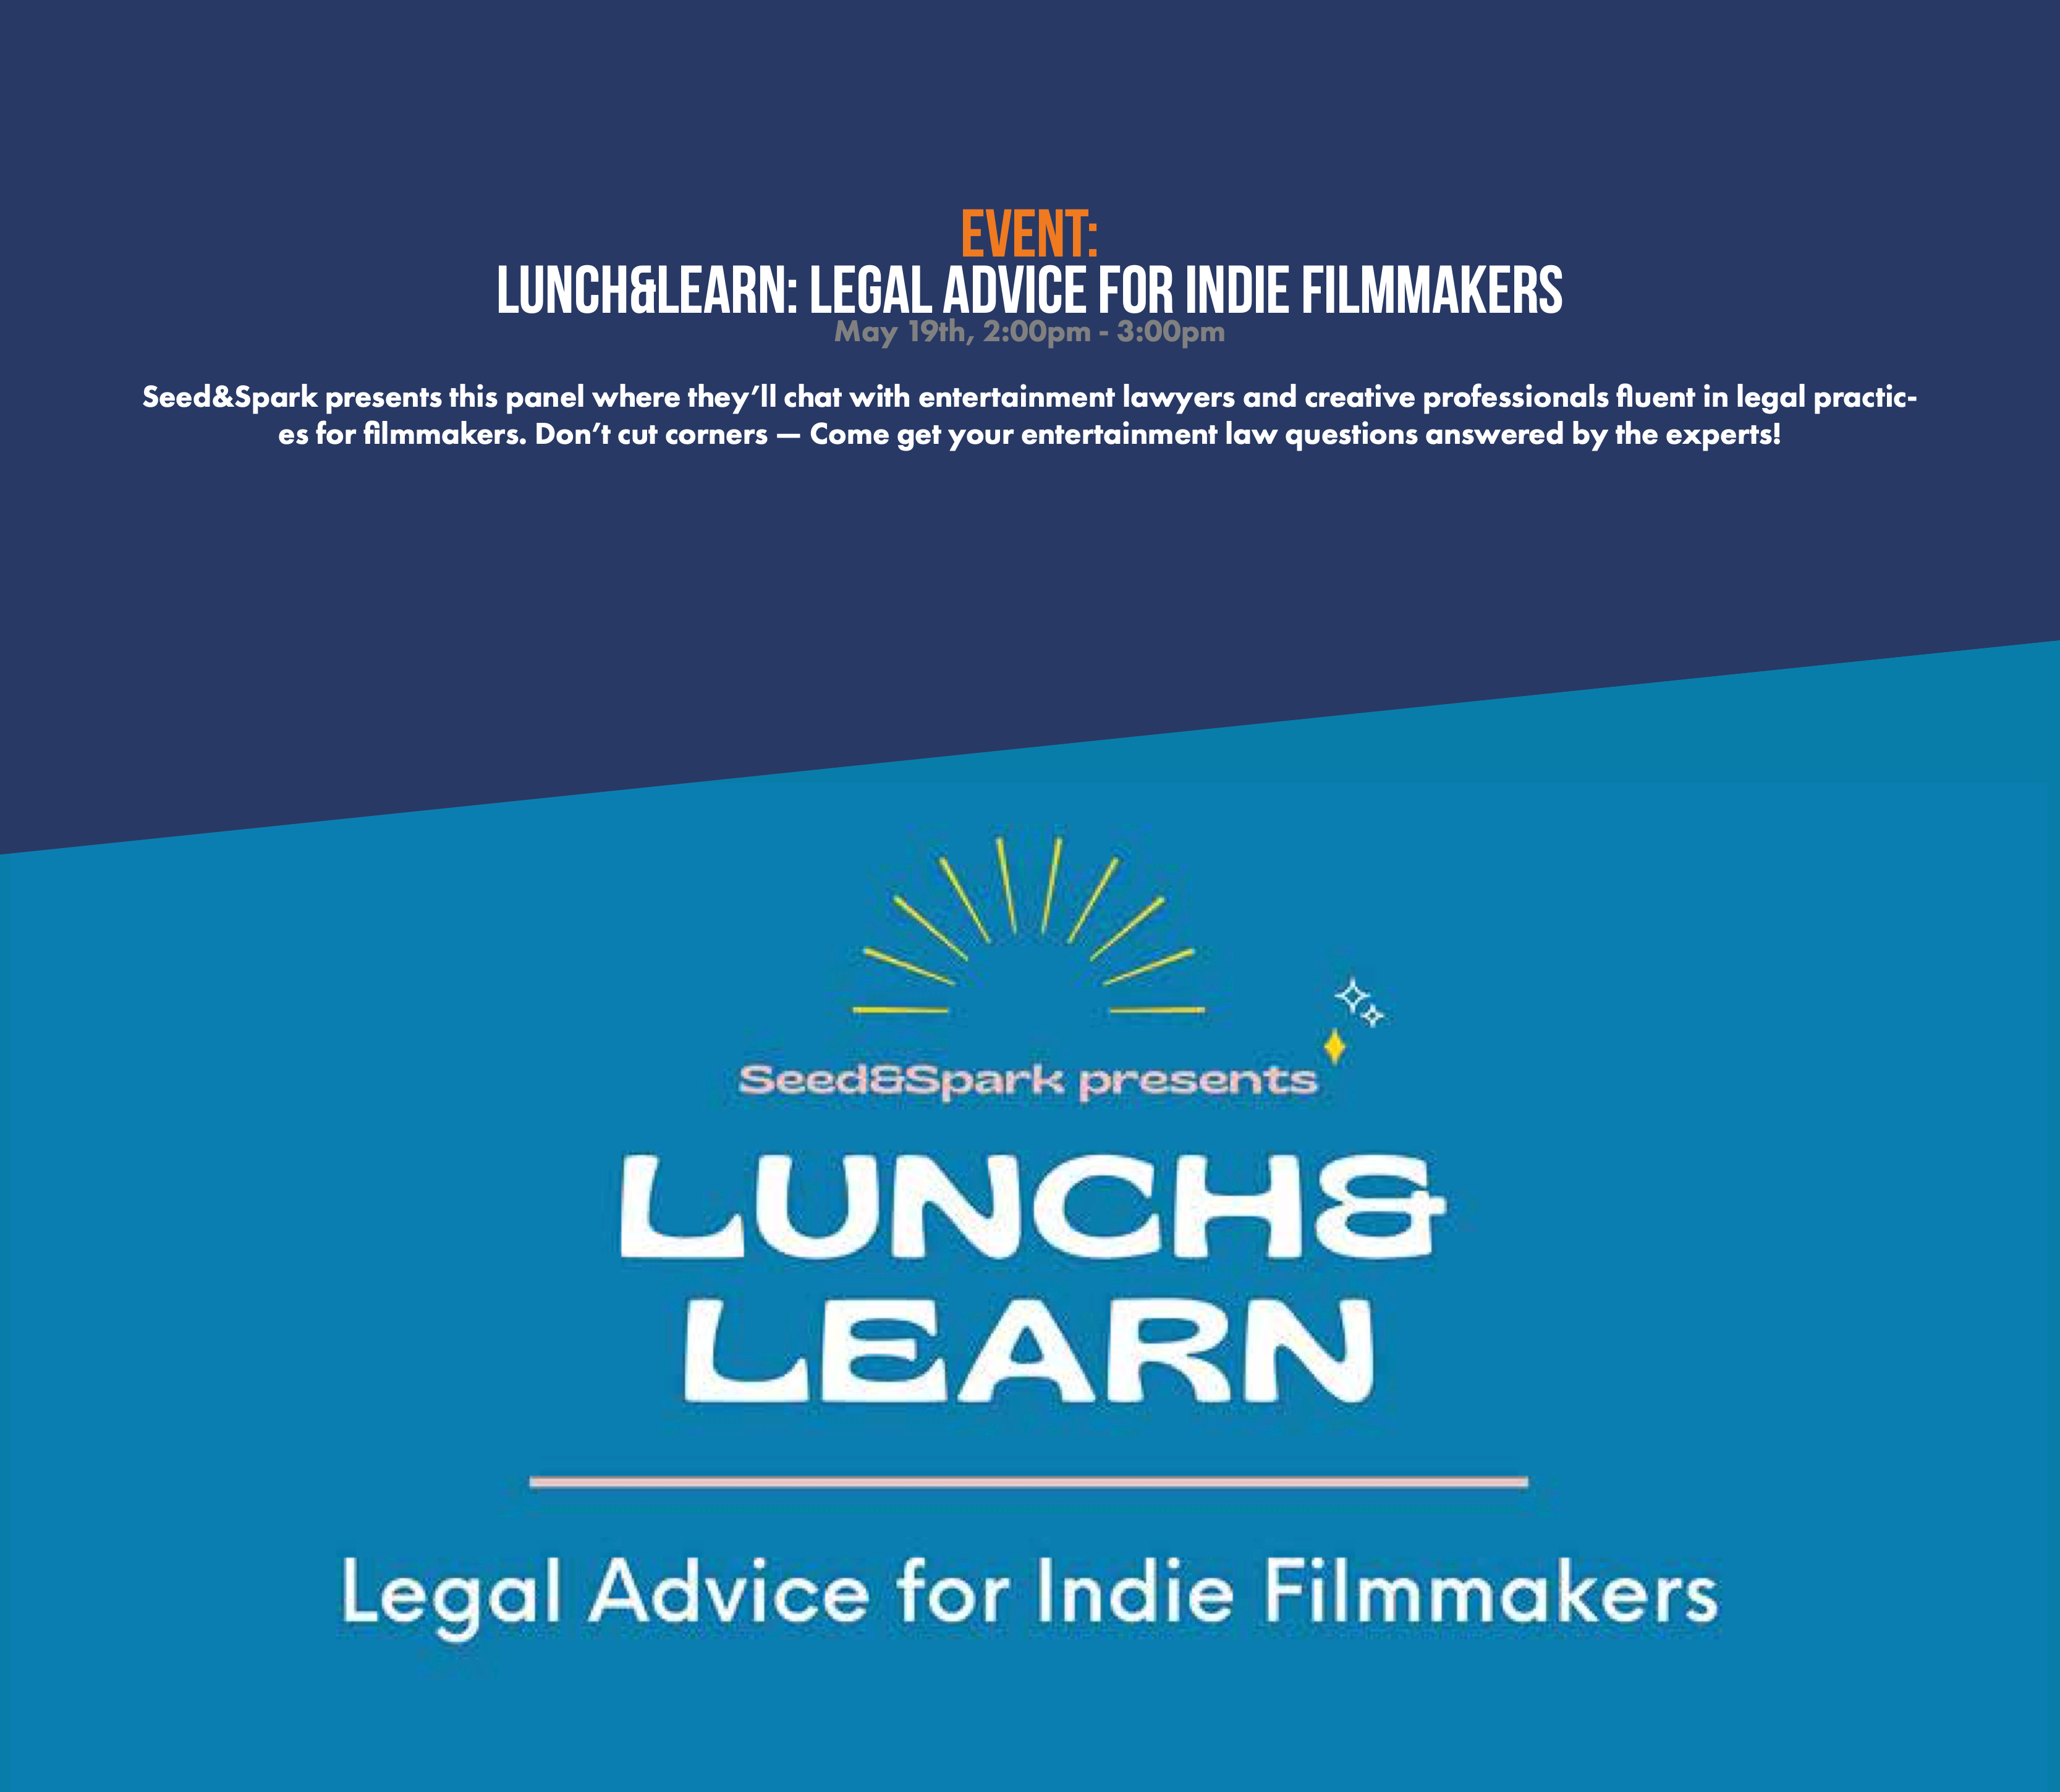 Lunch&Learn: Legal Advice for Indie Filmmakers  May 19th, 2:00pm - 3:00pm  Seed&Spark presents this panel where they'll chat with entertainment lawyers and creative professionals fluent in legal practices for filmmakers. Don't cut corners — Come get your entertainment law questions answered by the experts!